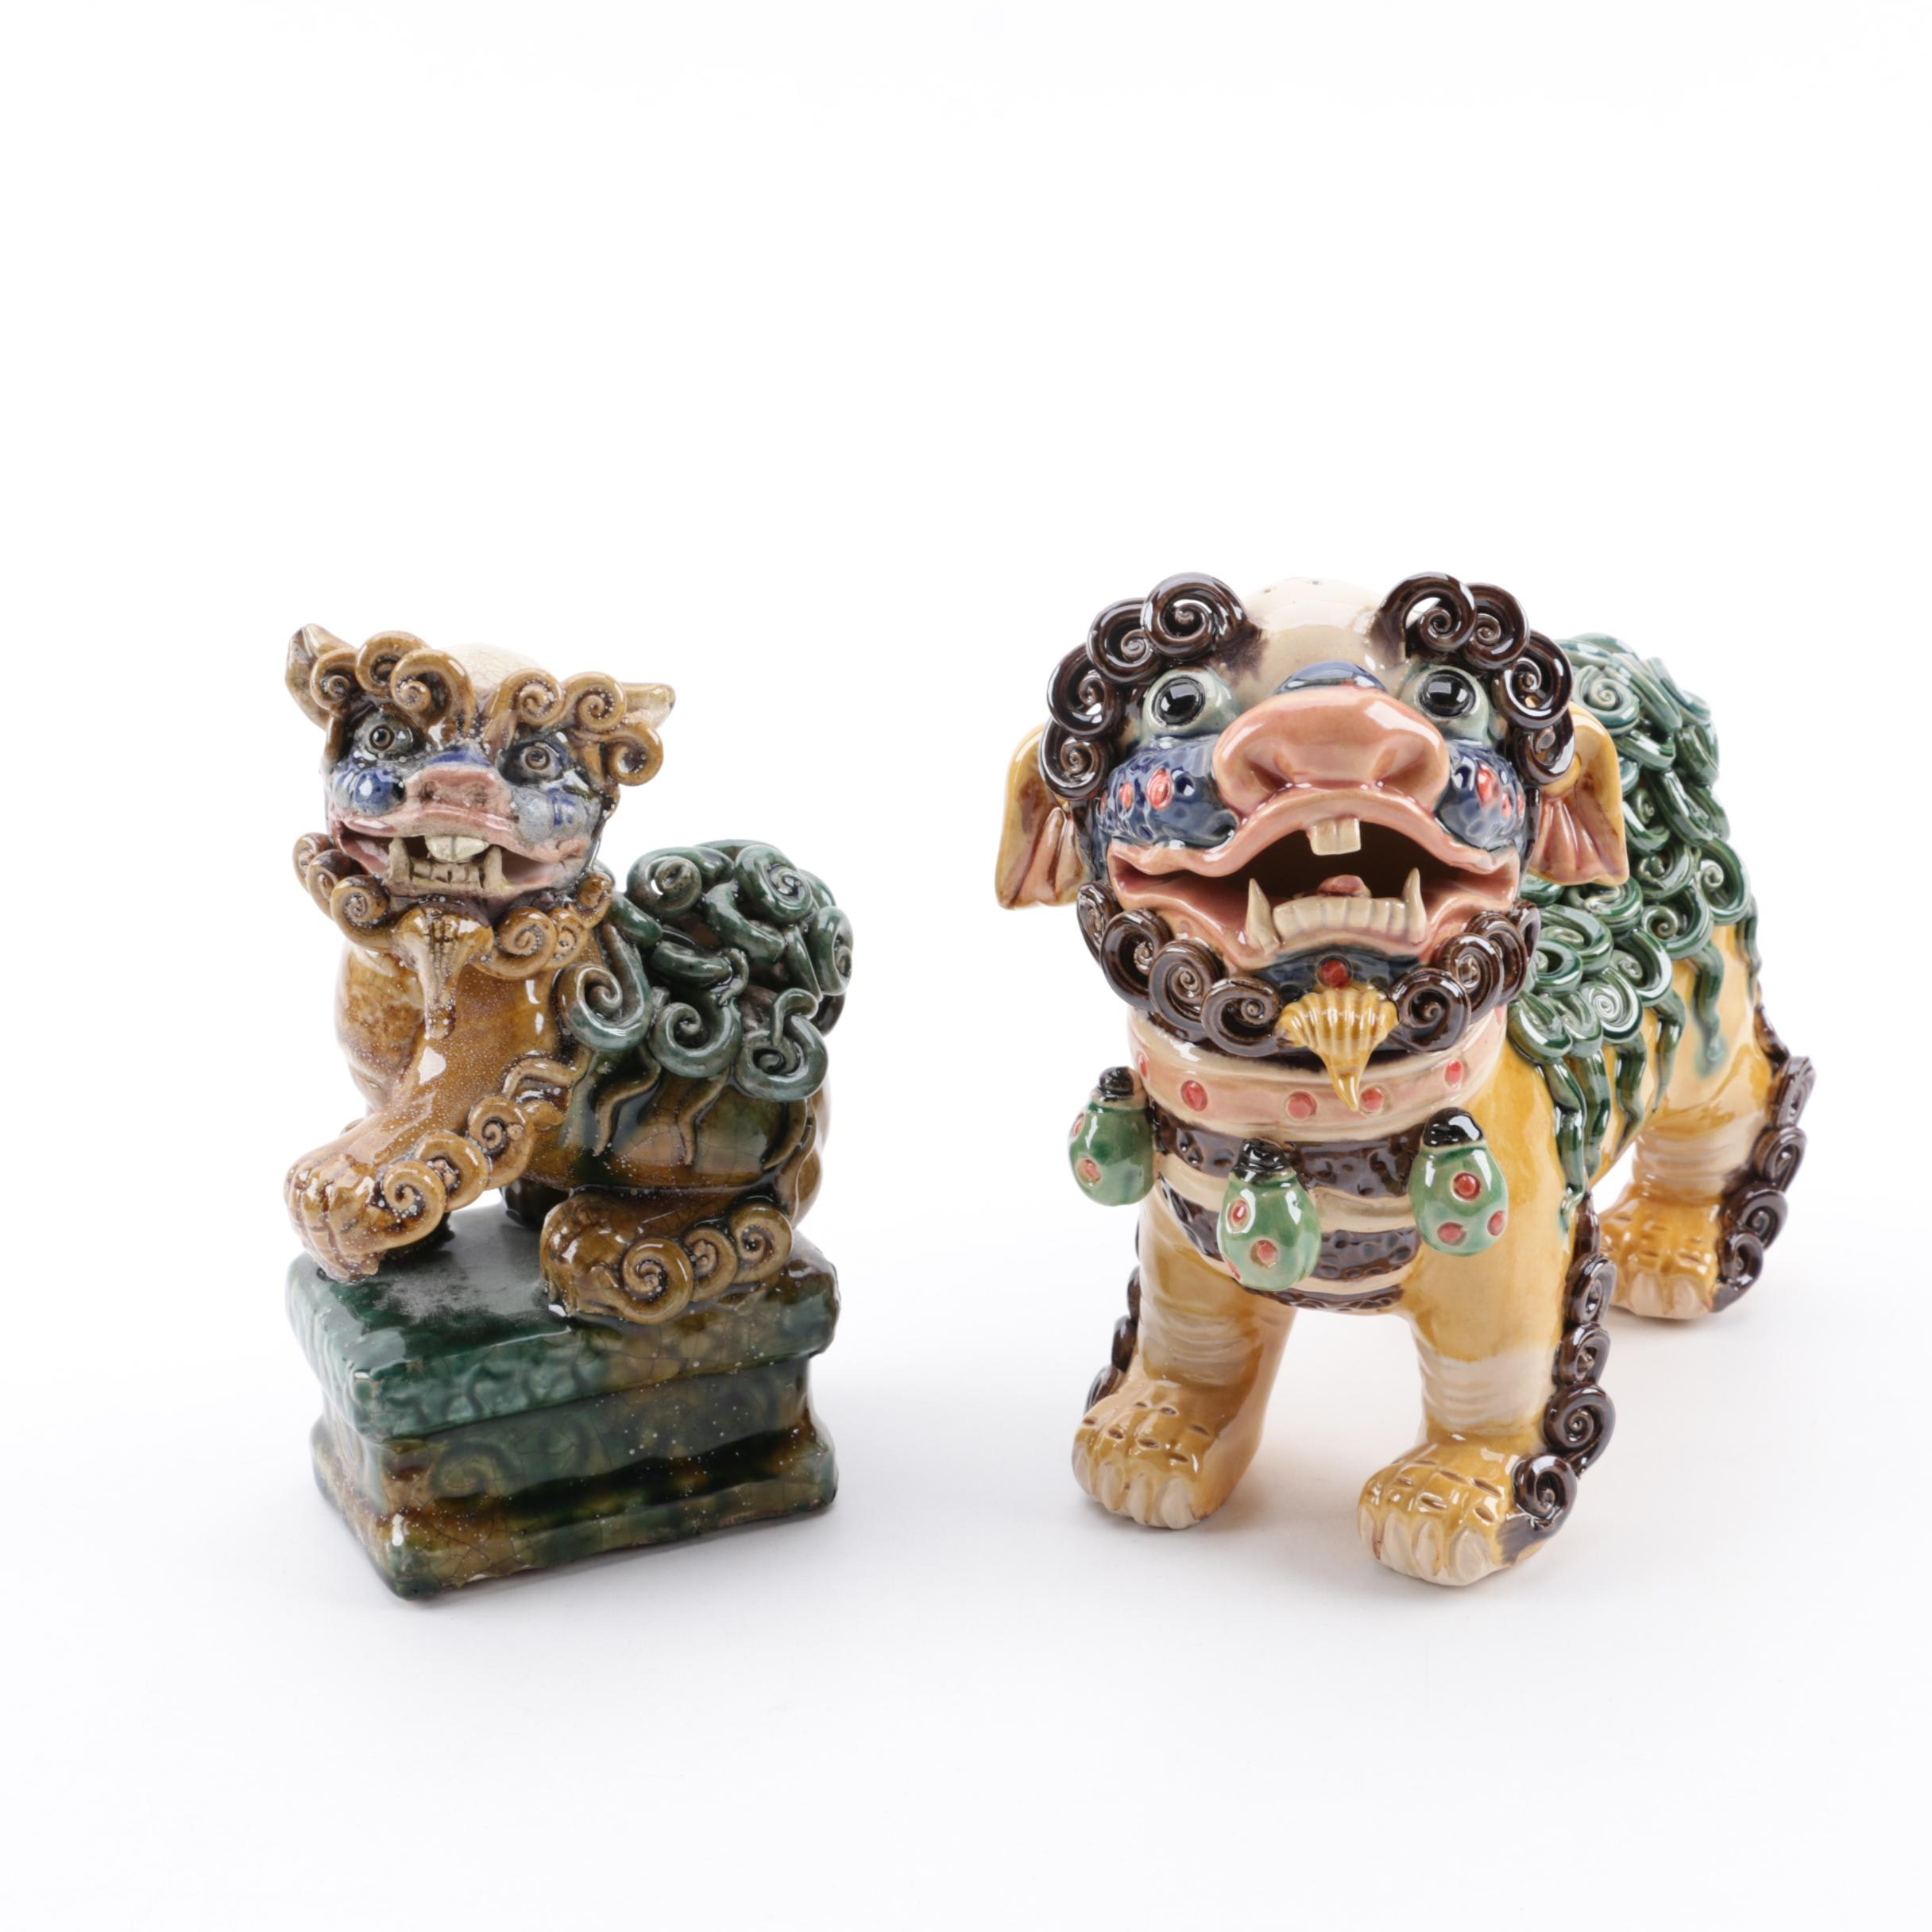 Chinese Ceramic Guardian Lion Figurines